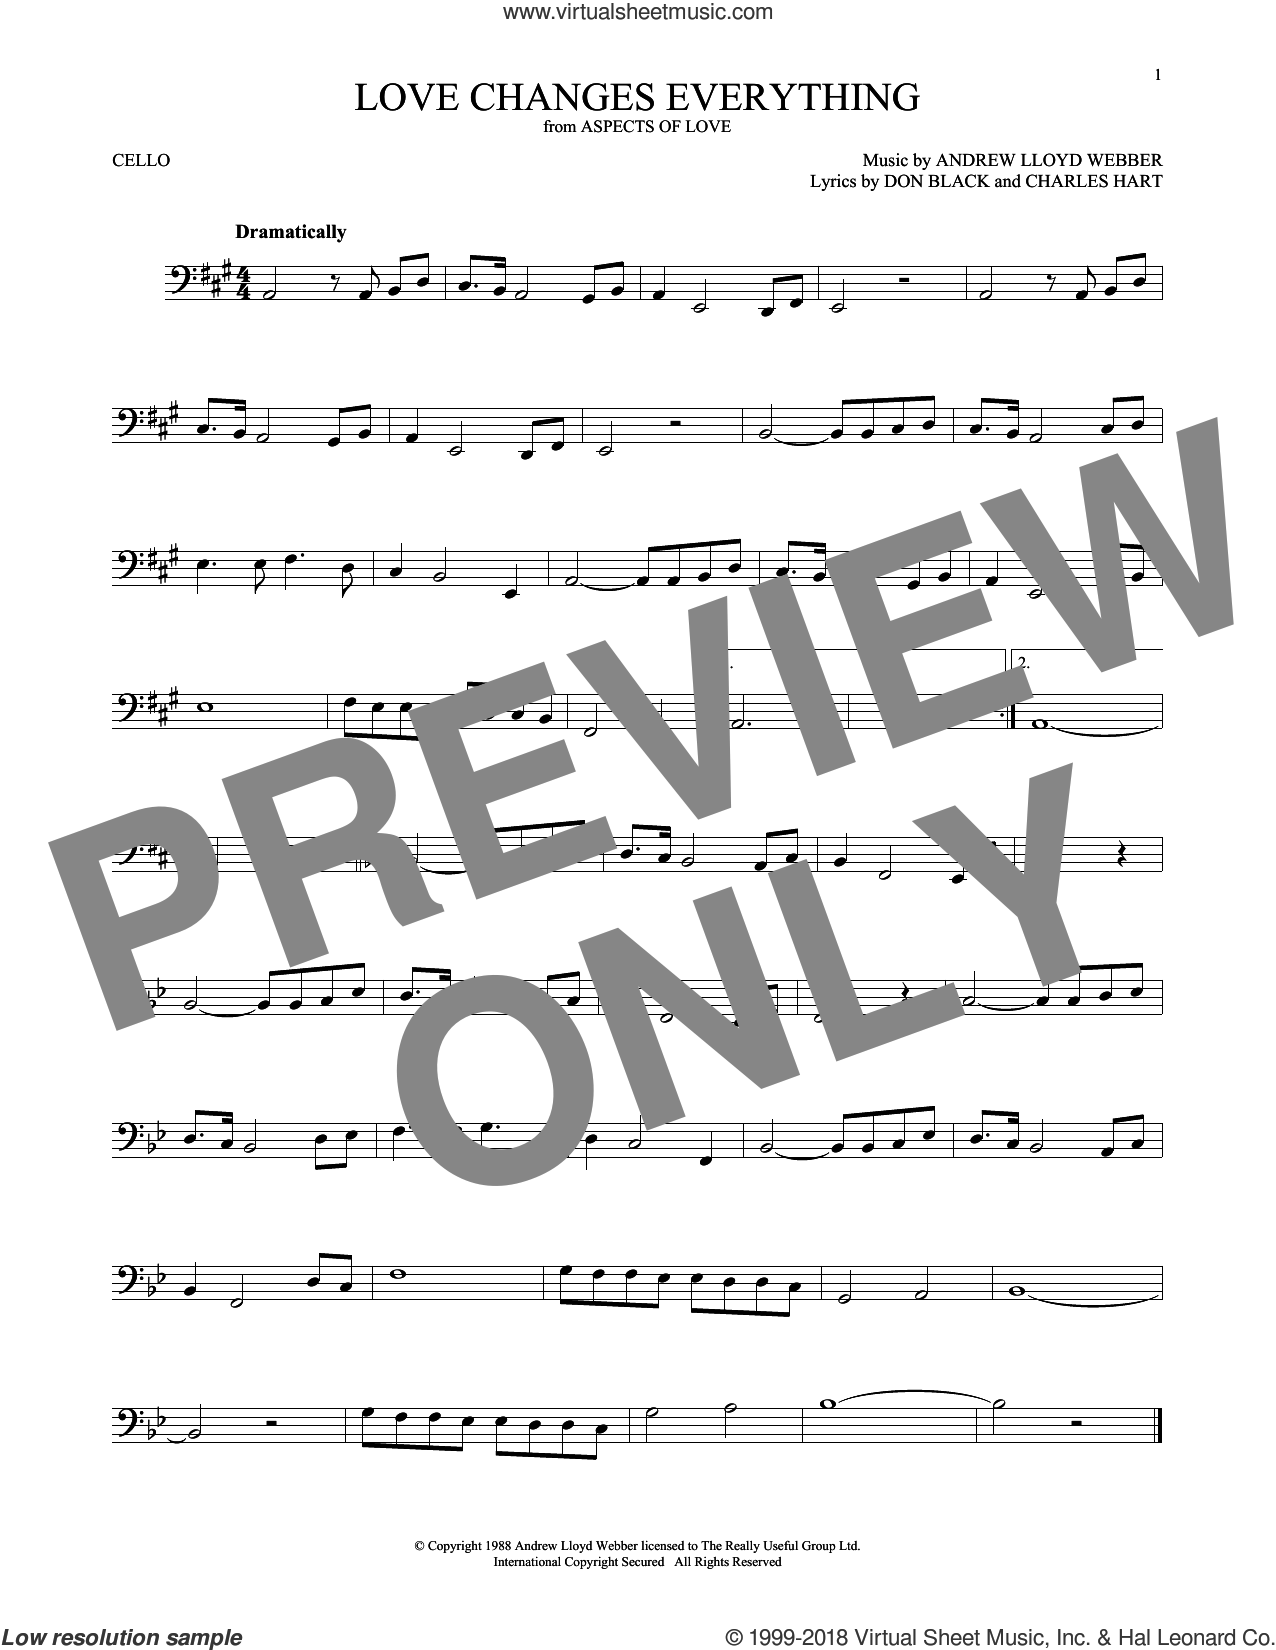 Love Changes Everything (from Aspects of Love) sheet music for cello solo by Andrew Lloyd Webber, Charles Hart and Don Black, intermediate skill level